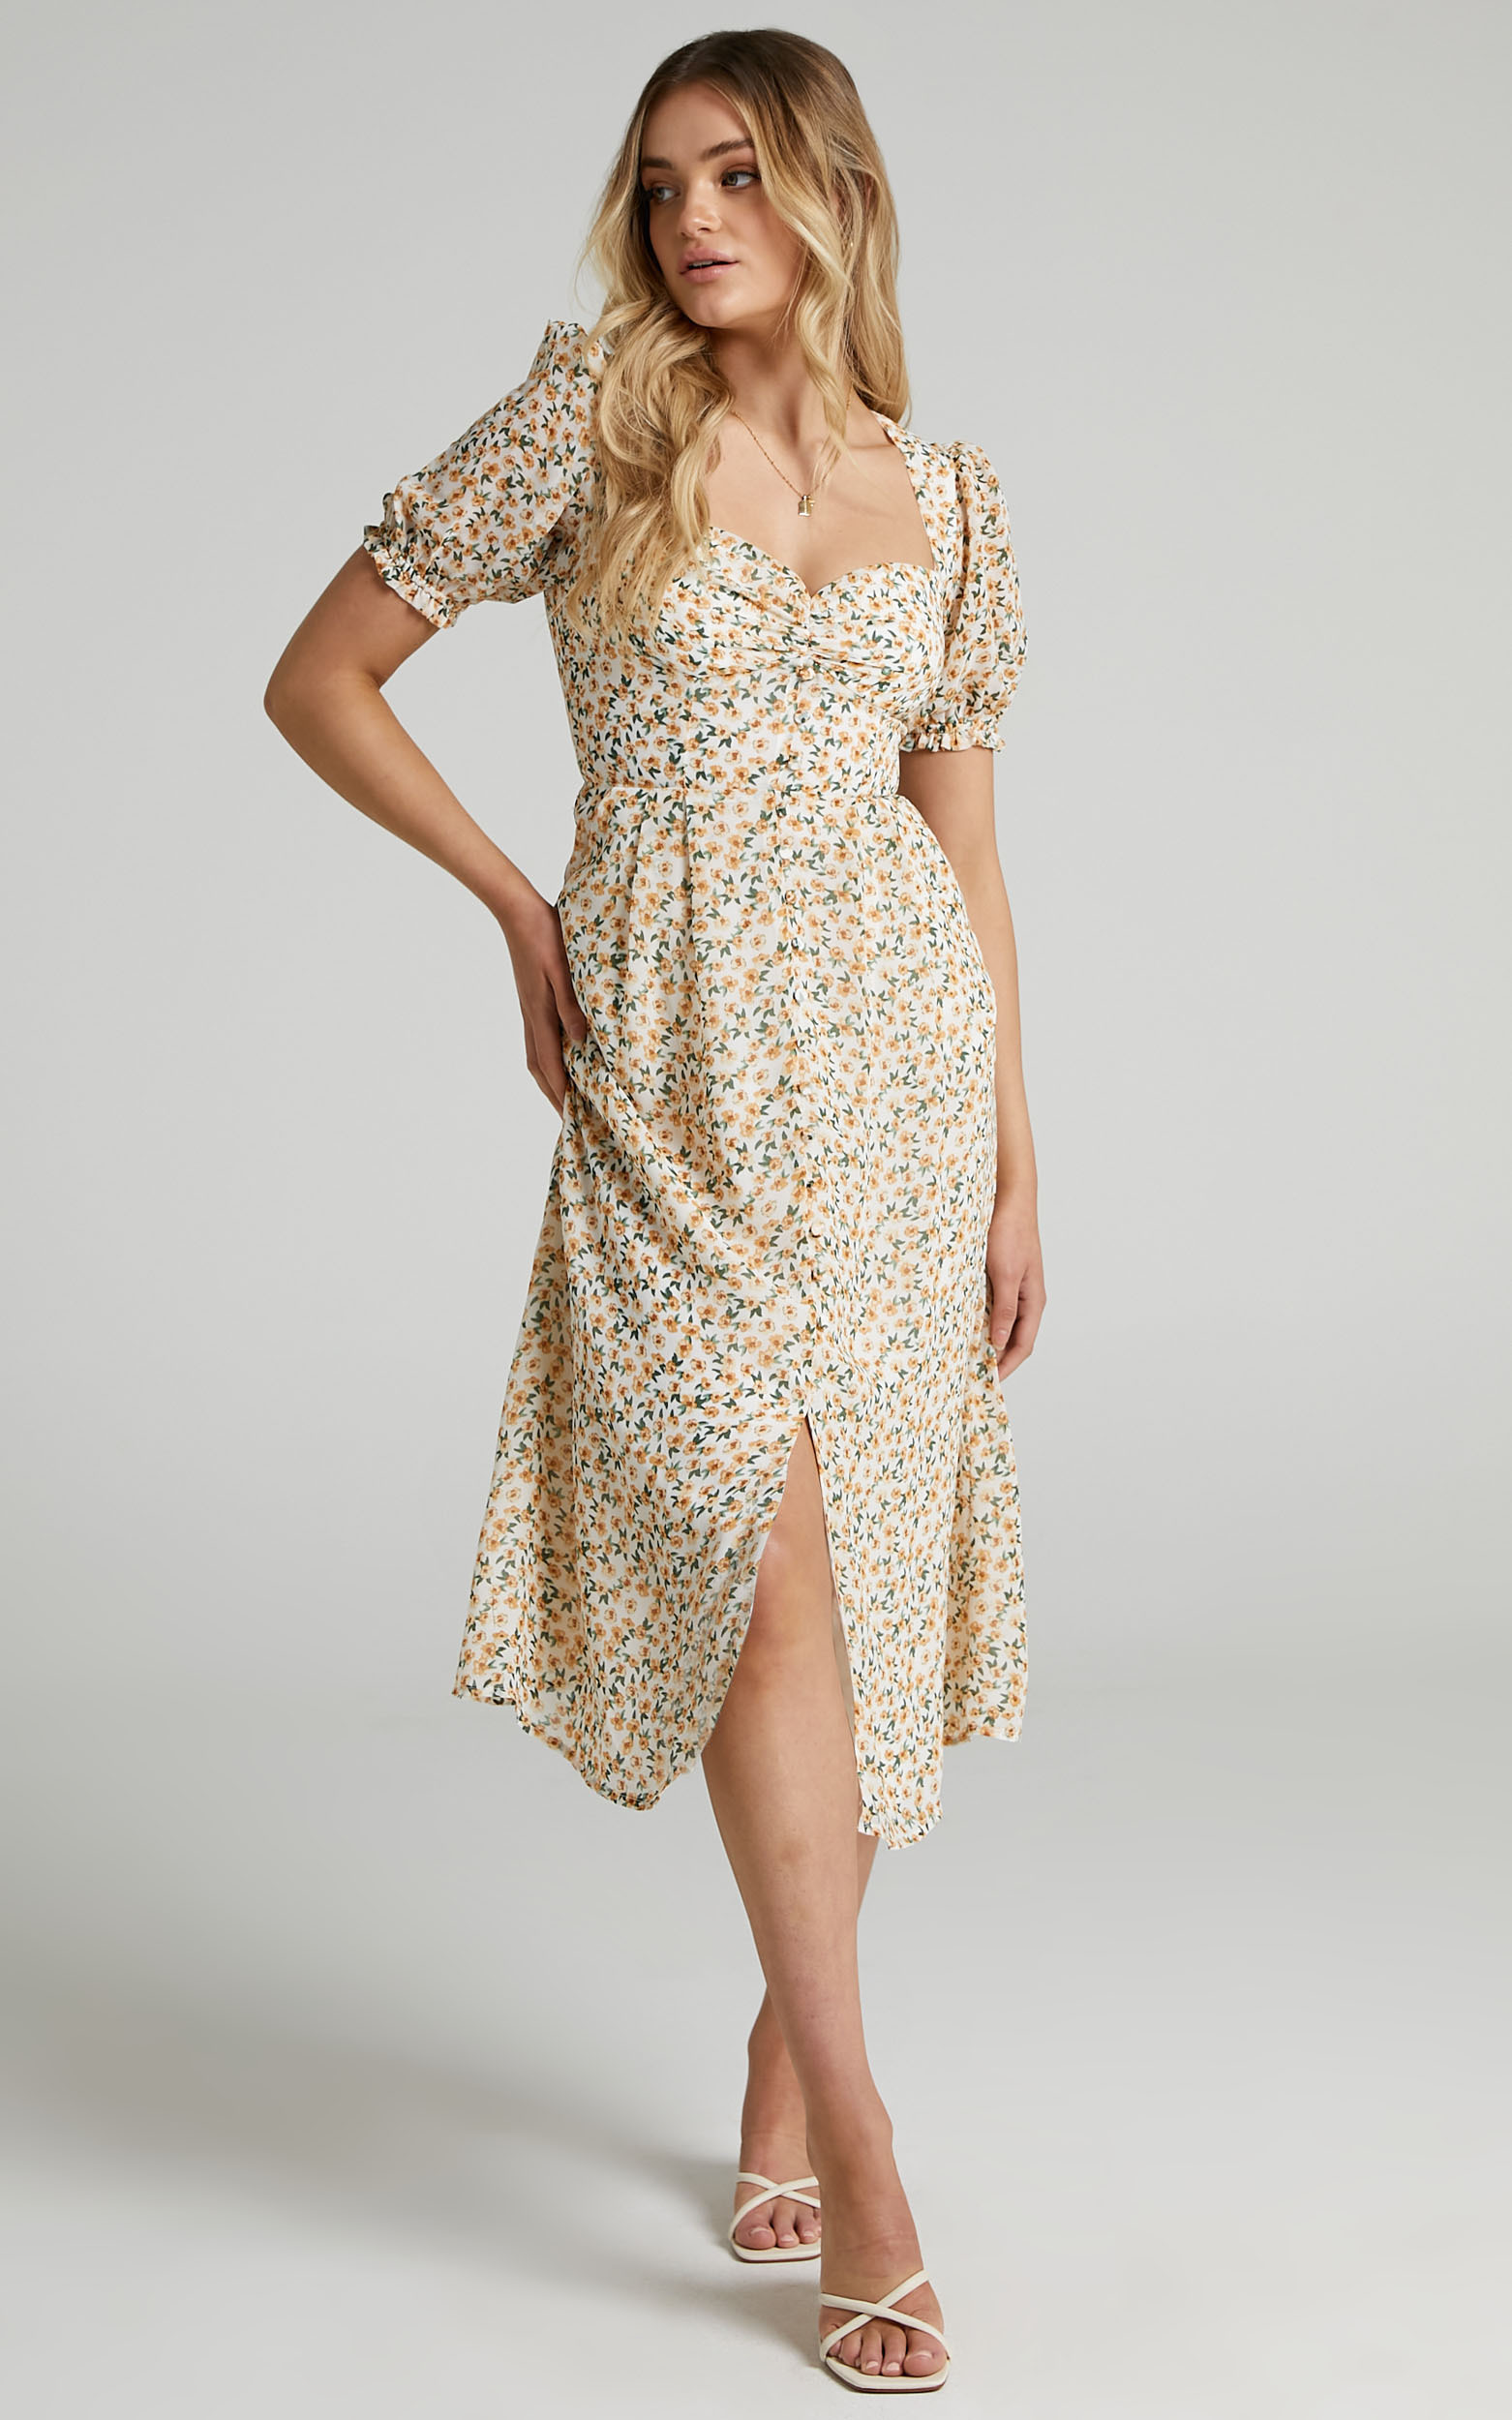 Seven Wonders - Yasmine Midi Dress in Yellow Floral - L, MLT1, hi-res image number null